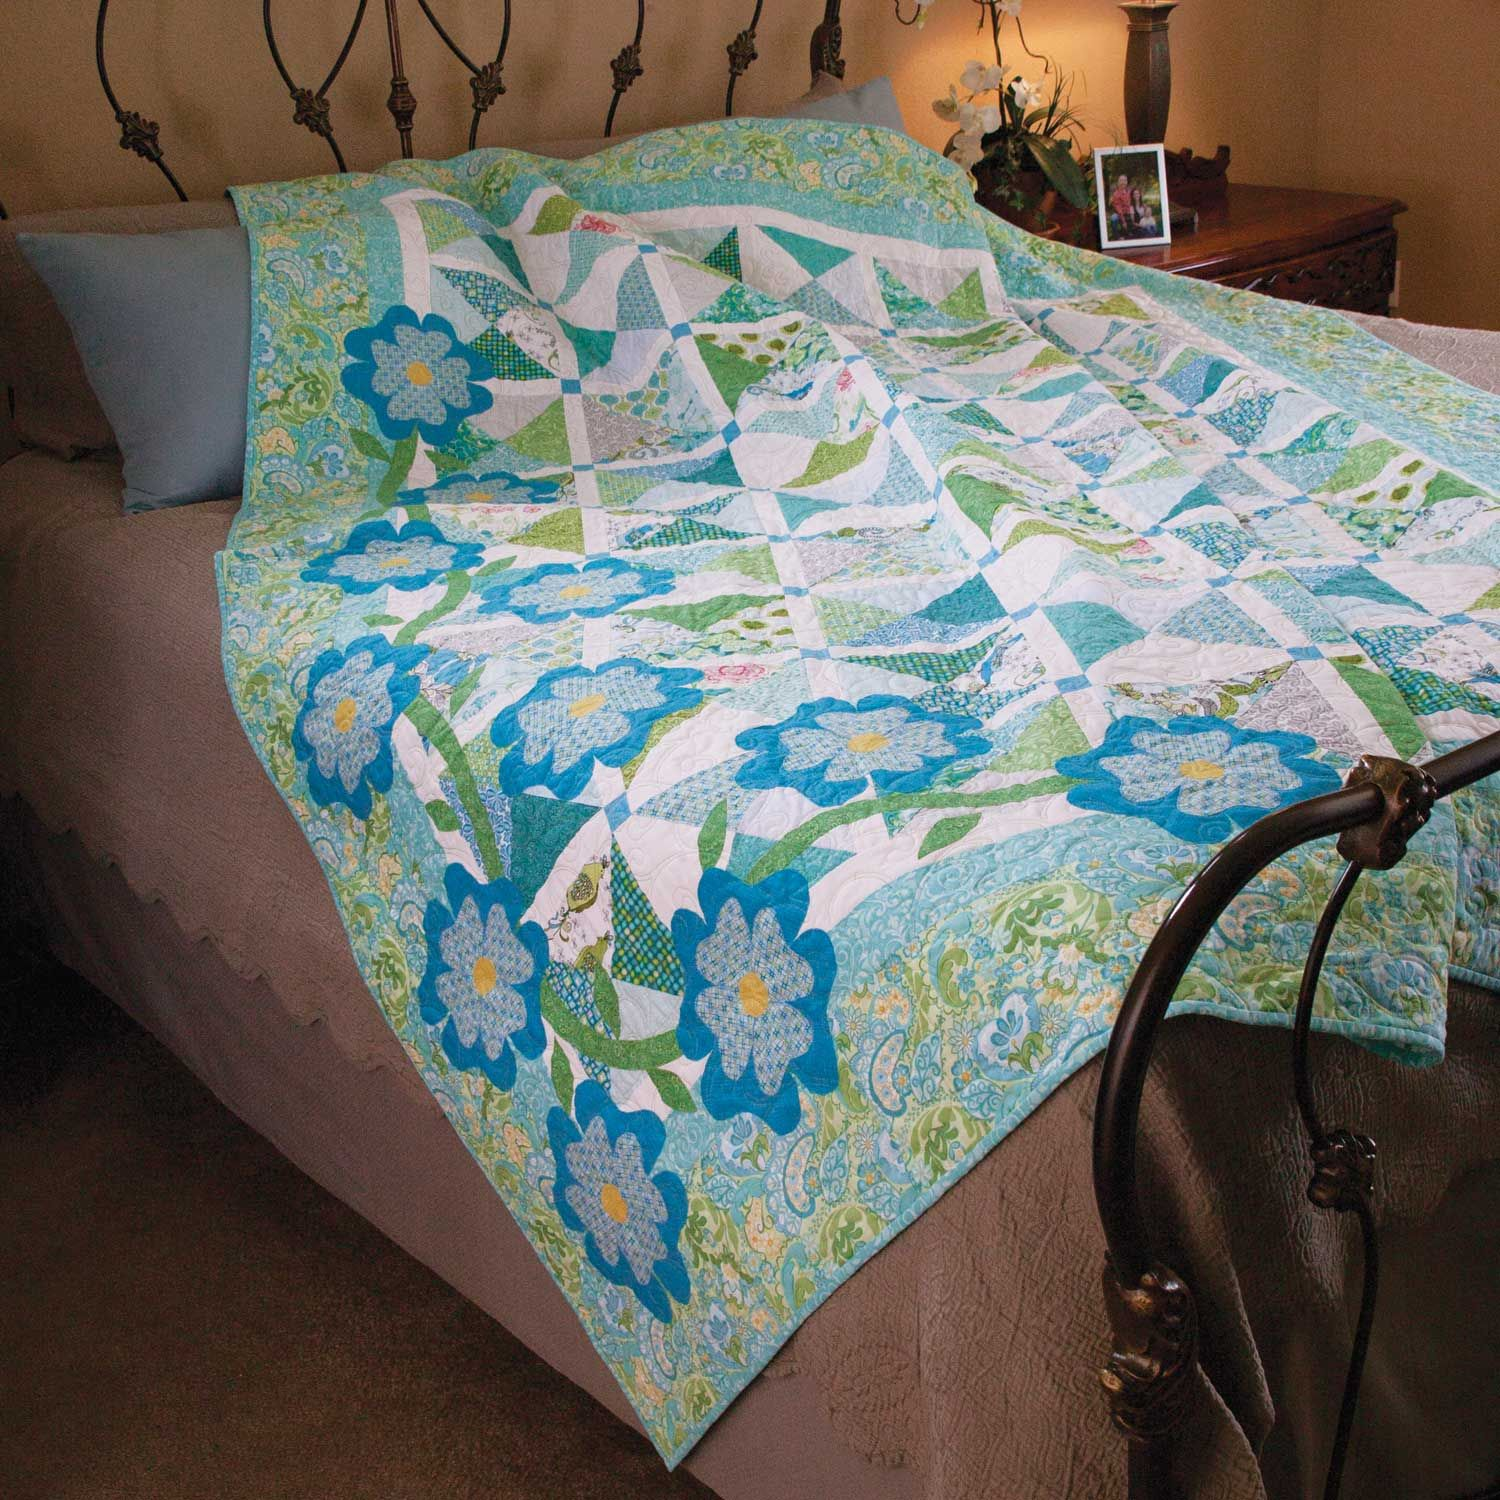 quilt home nxjid index usource product inches x jade pierce rizzy unmlt size aaa queen